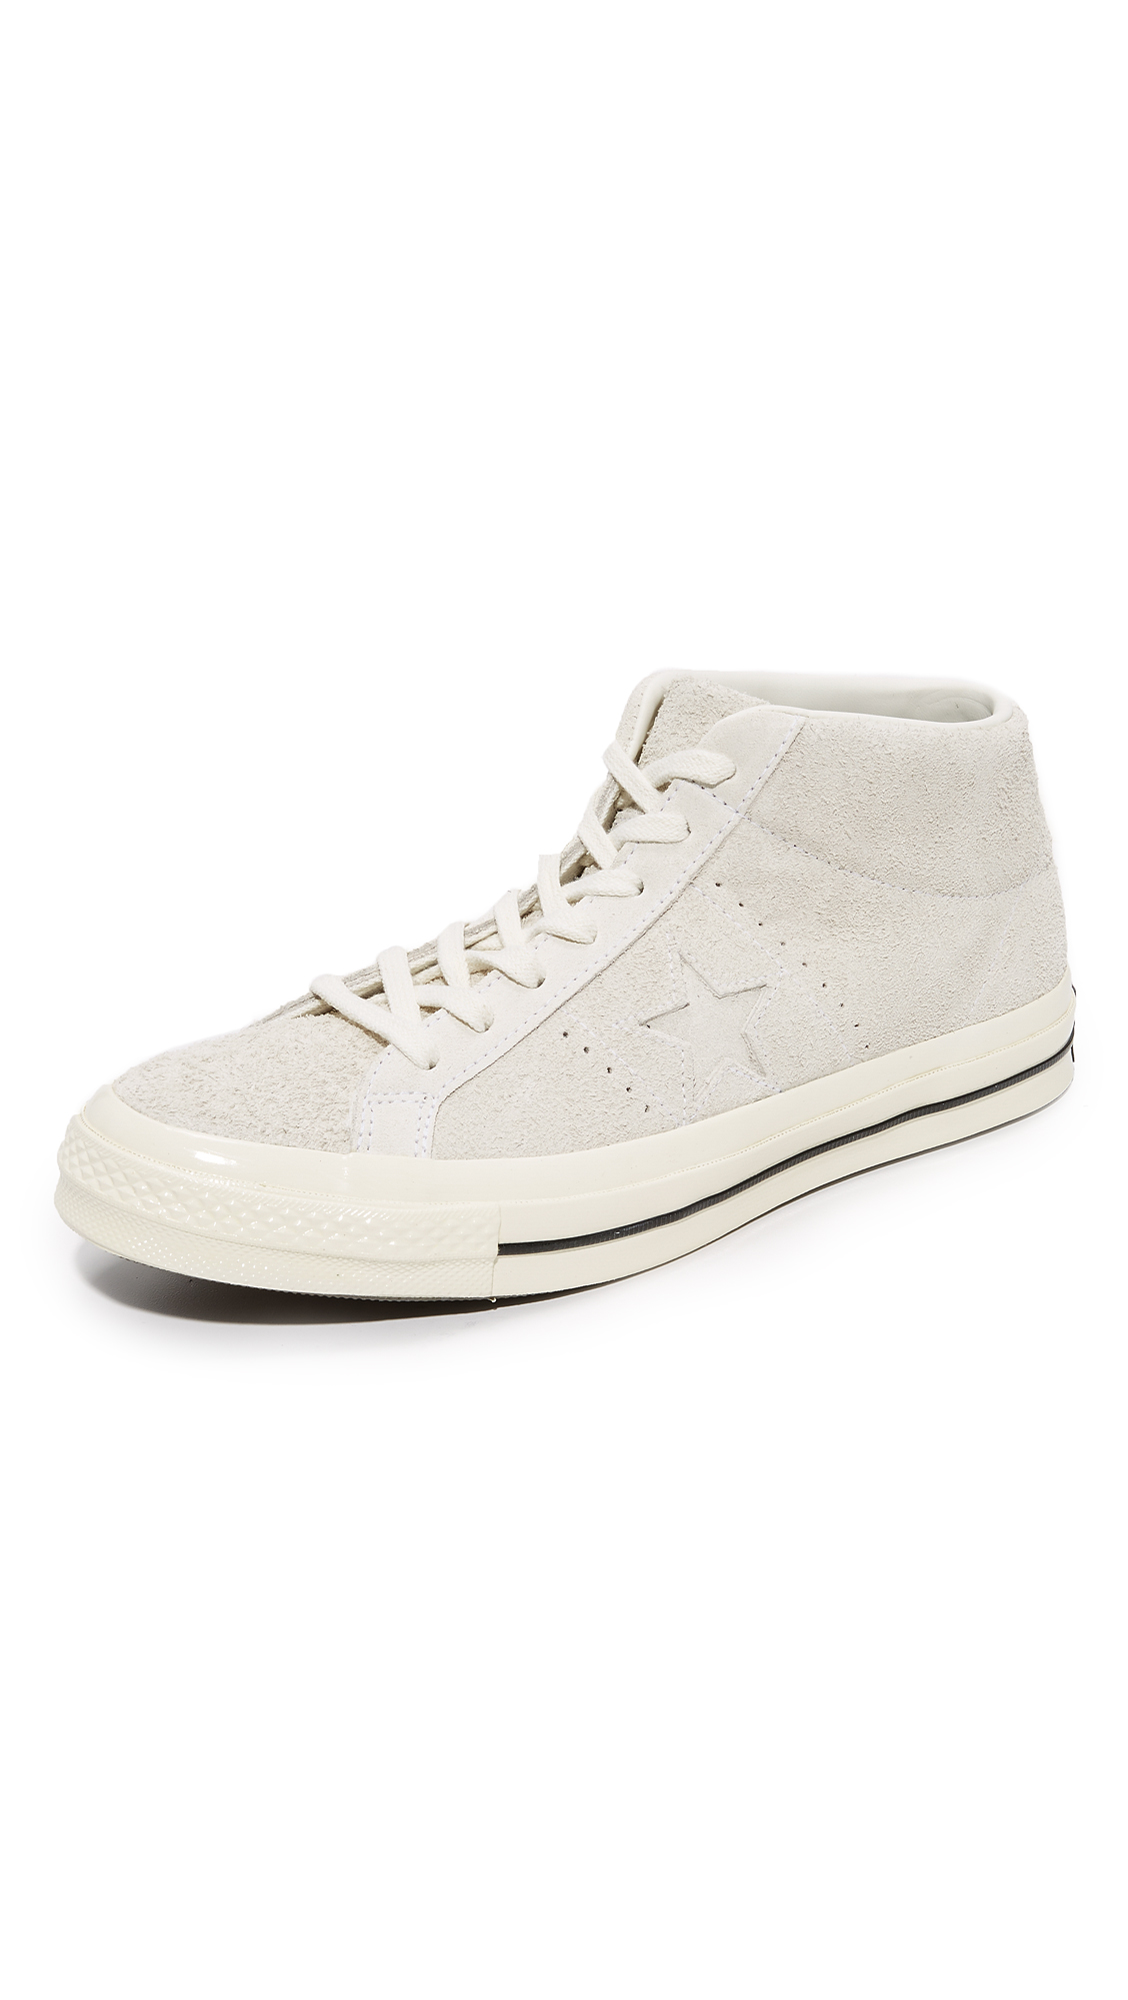 Converse One Star 74 Suede Mid Top Sneakers